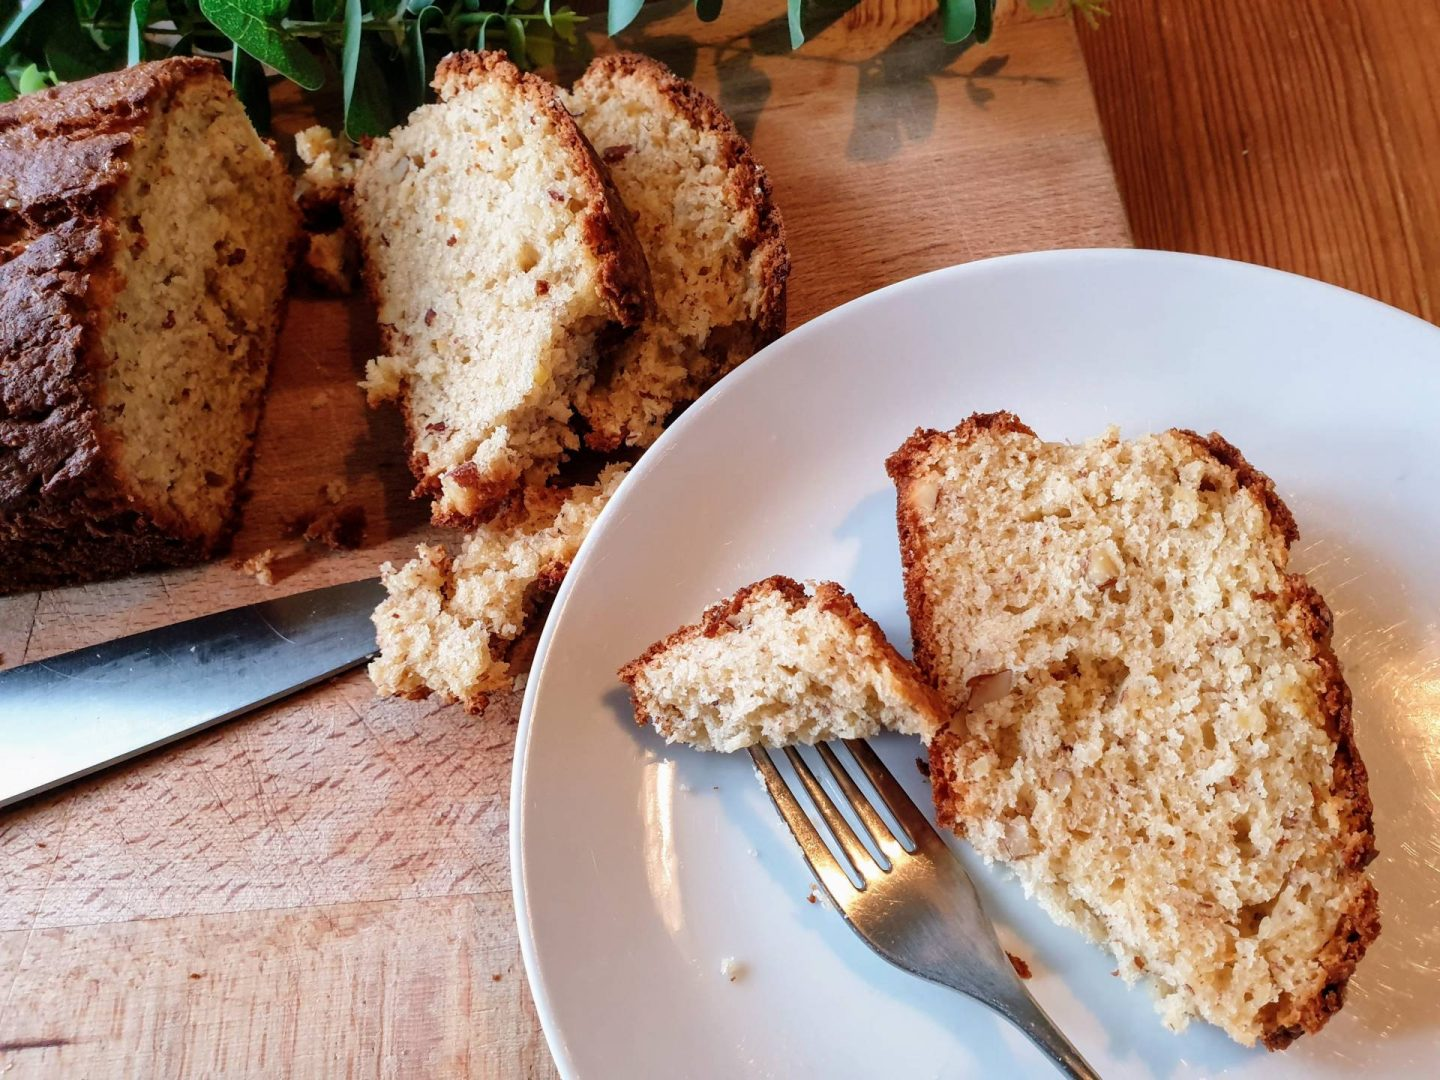 banana bread on white plate with fork